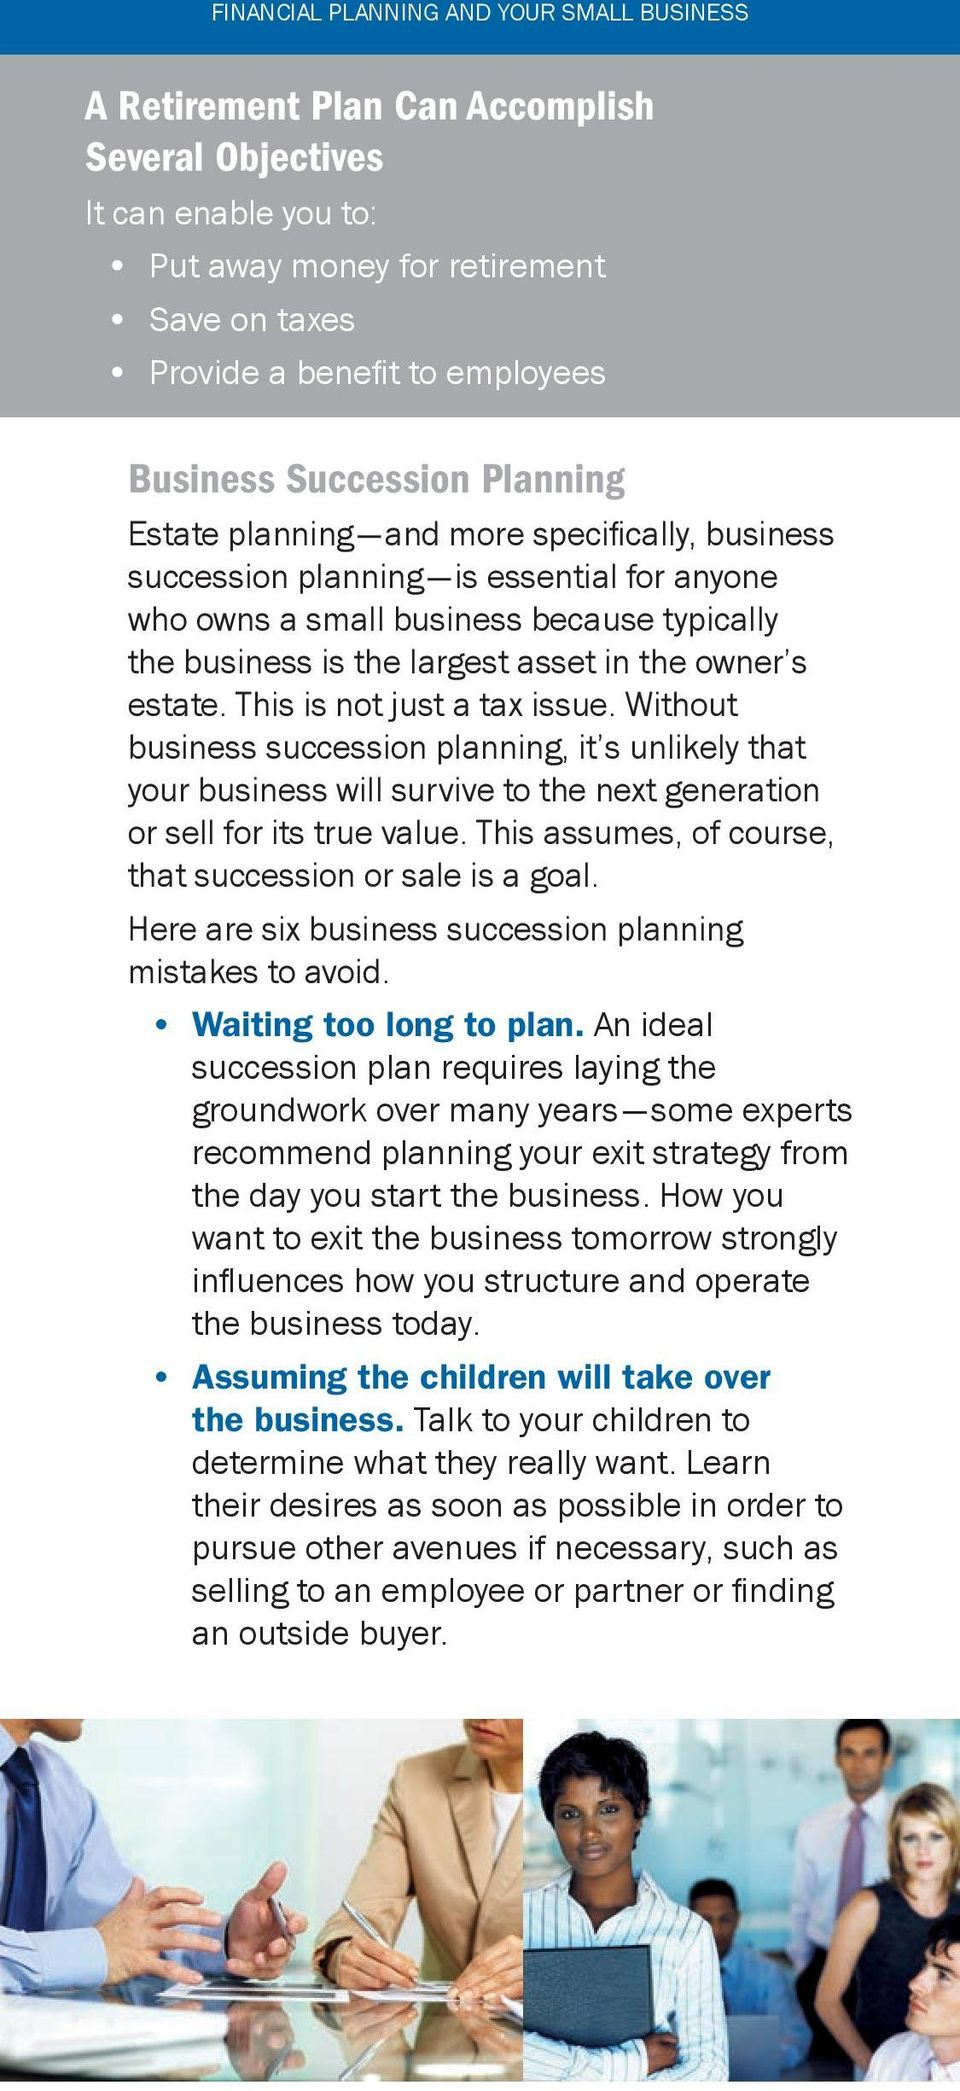 in the owner s estate. This is not just a tax issue. Without business succession planning, it s unlikely that your business will survive to the next generation or sell for its true value.